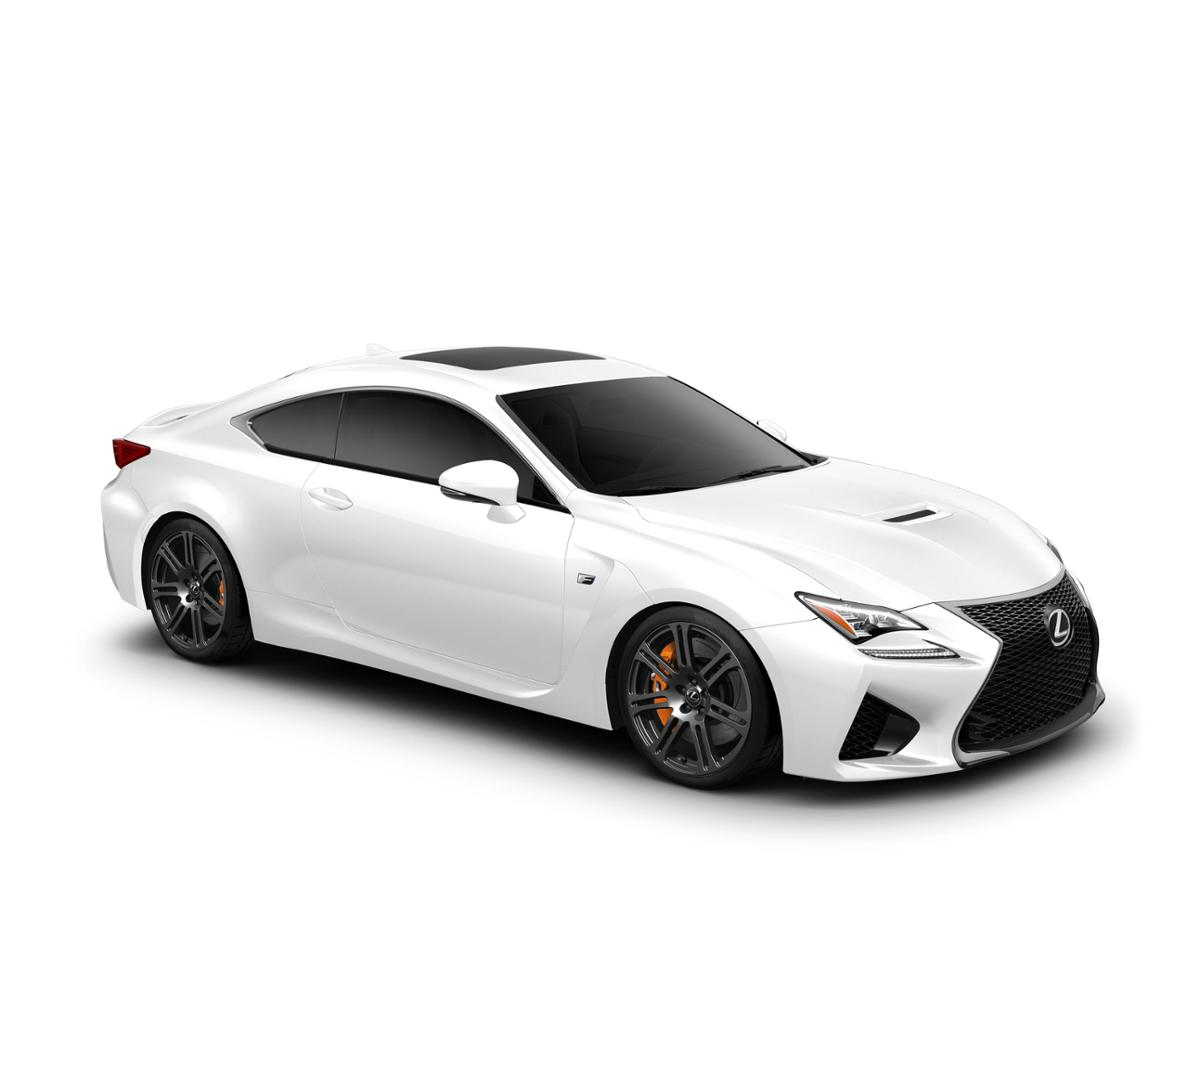 2017 Lexus Rc Exterior: 2017 Lexus RC F For Sale In Bakersfield